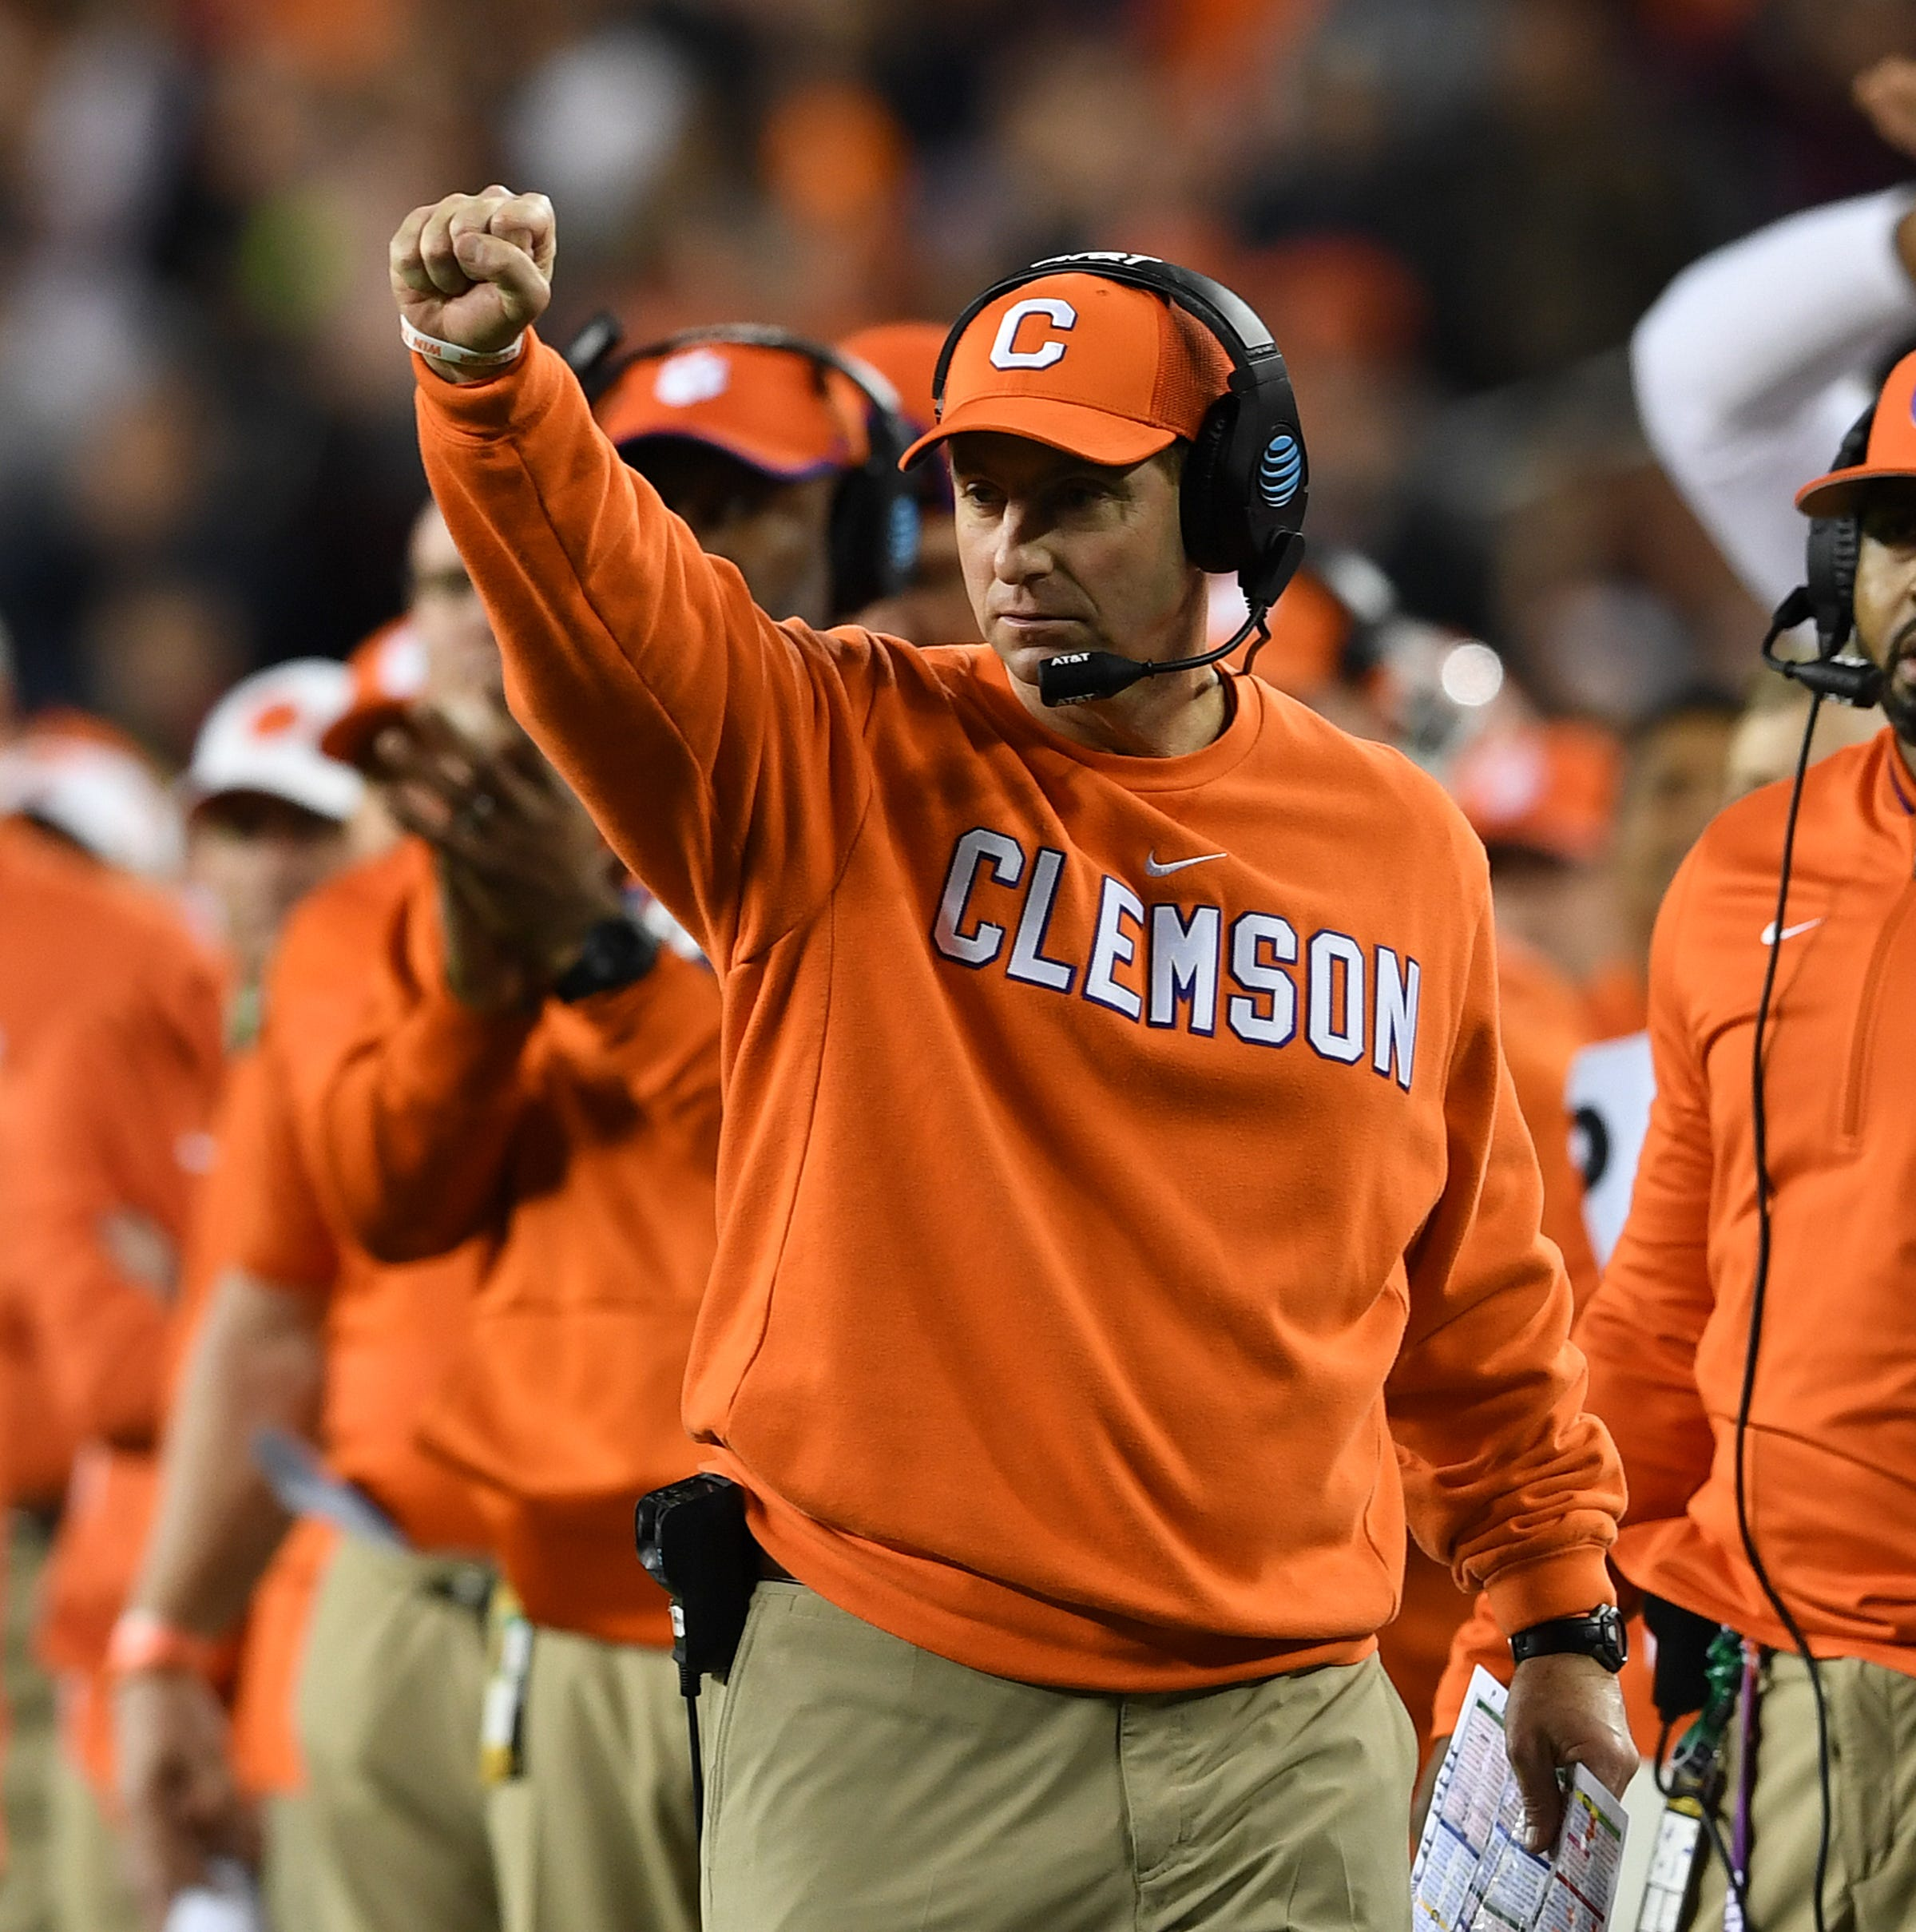 Clemson football team will kick off 2019 schedule with earliest game in program history